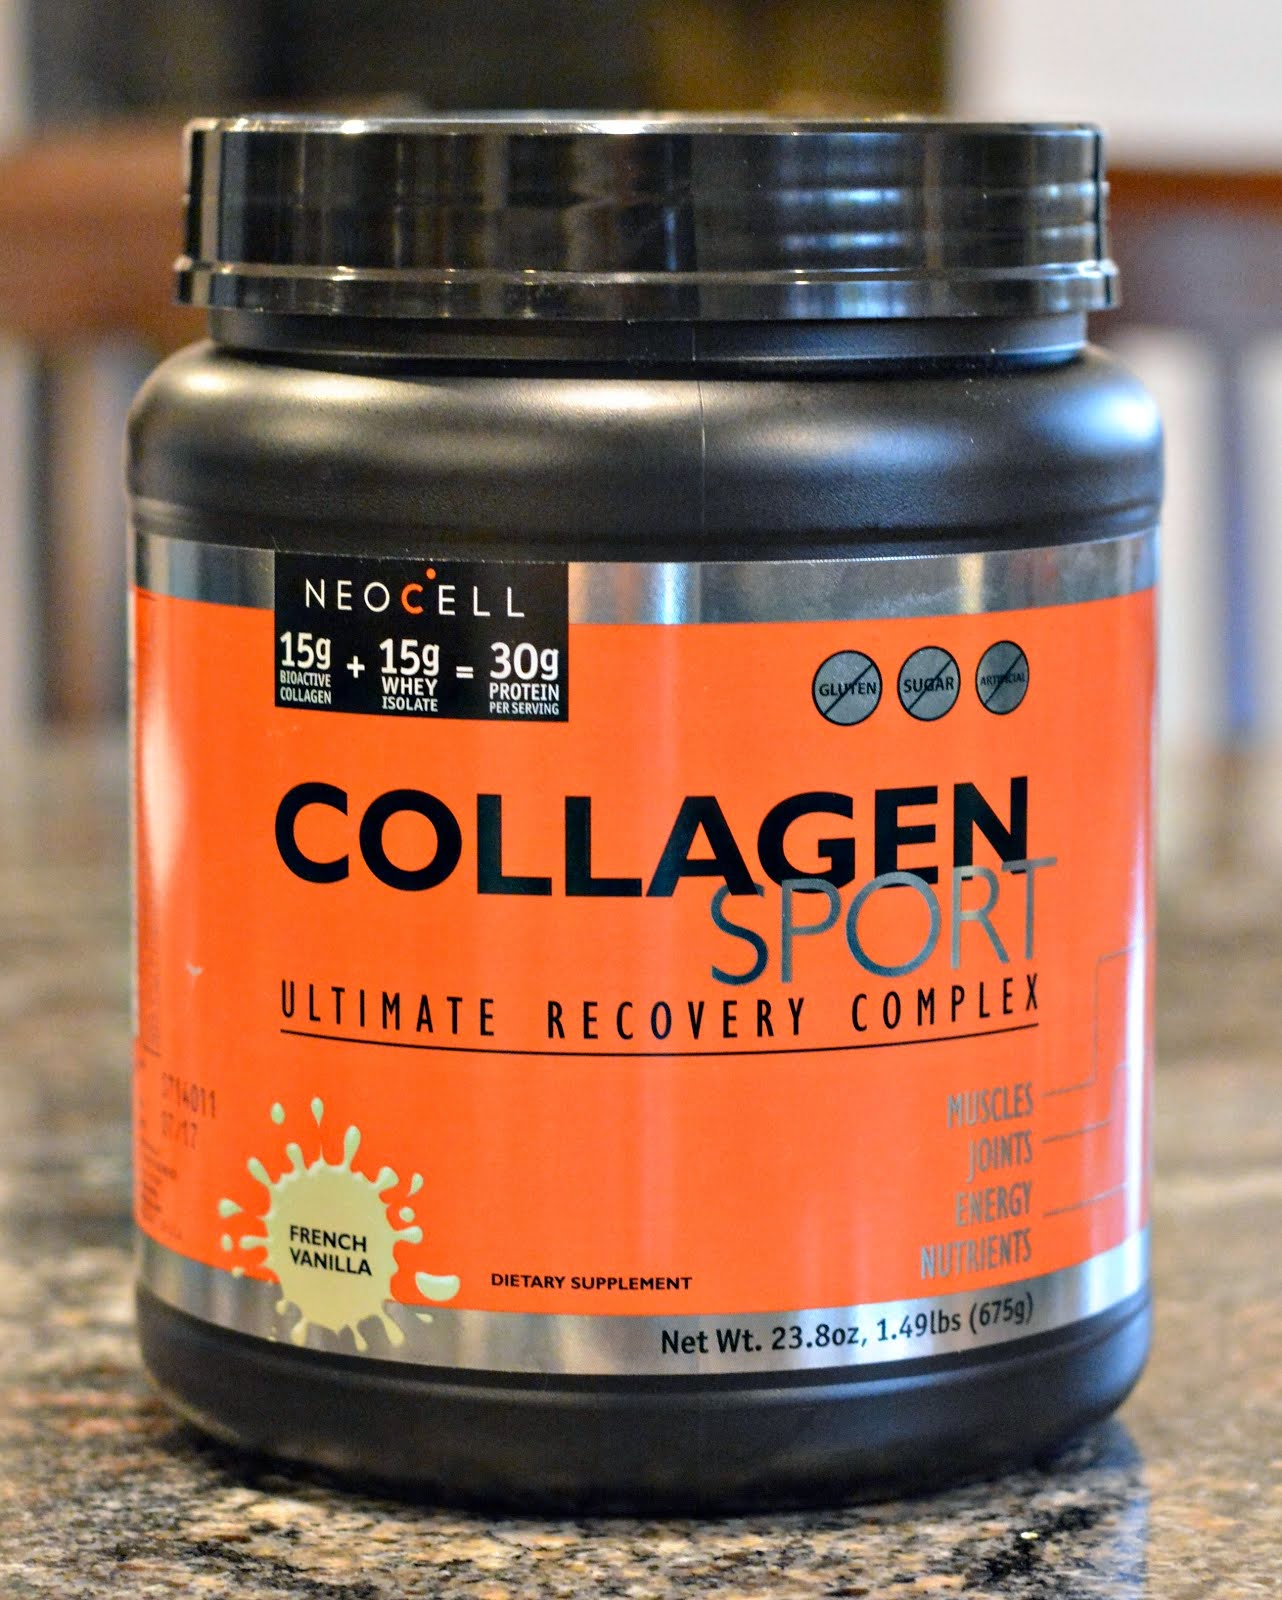 Enter To Win NeoCell Collagen Sport Ultimate Recovery Complex